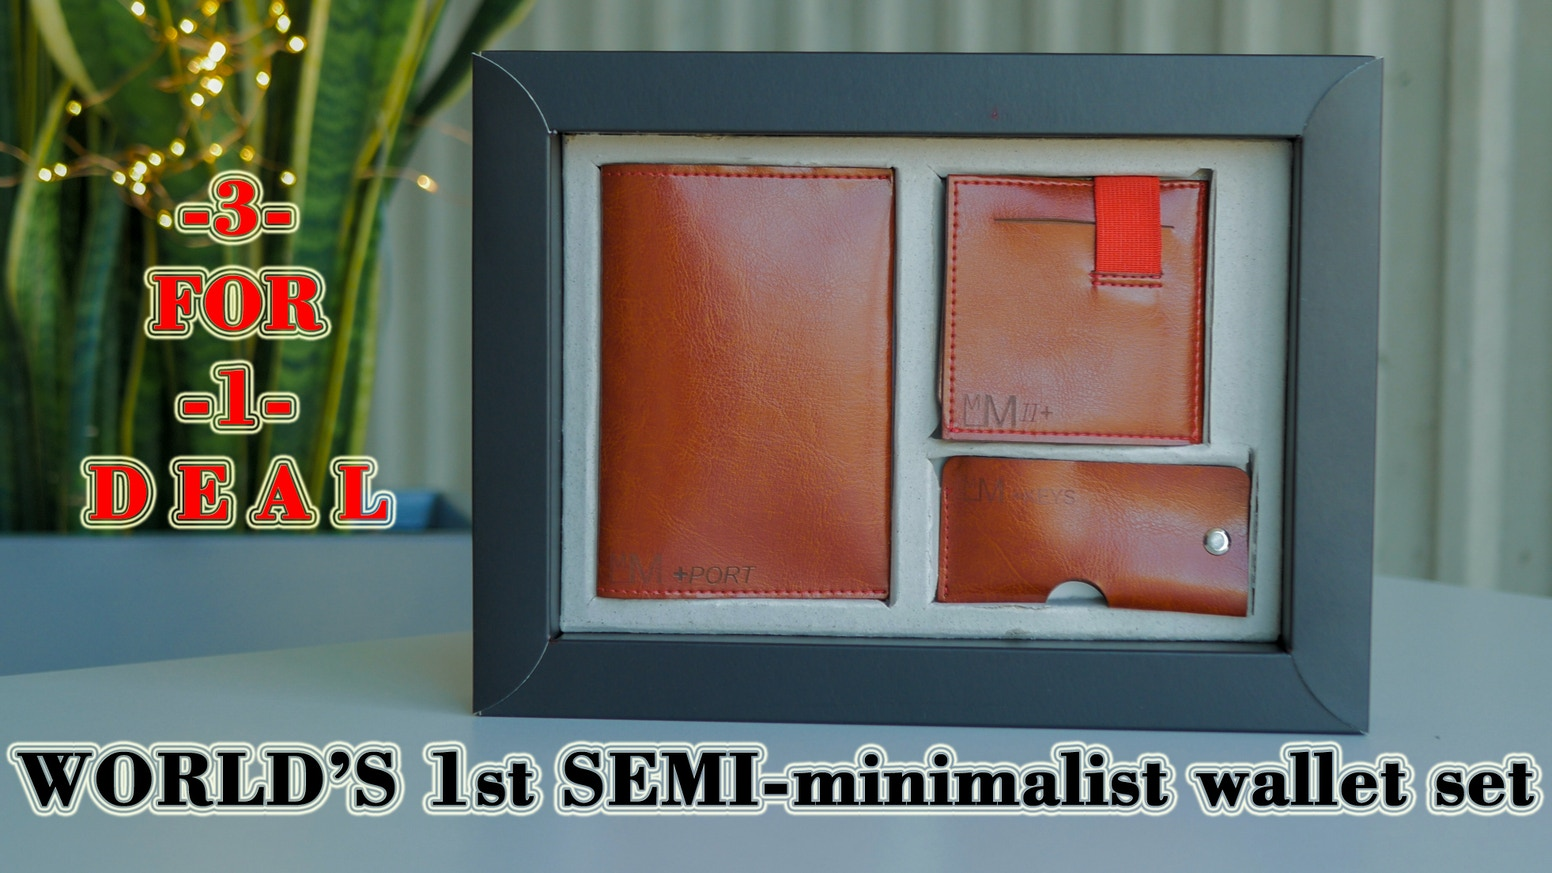 MM2+ WALLET: 12 CARDS, COINS, CASH, KEY HOLDER, PRO-RFID, ANTI-RFID, GENUINE OR ECO LEATHER, LASER ENGRAVING & WALLET GIFT BOX